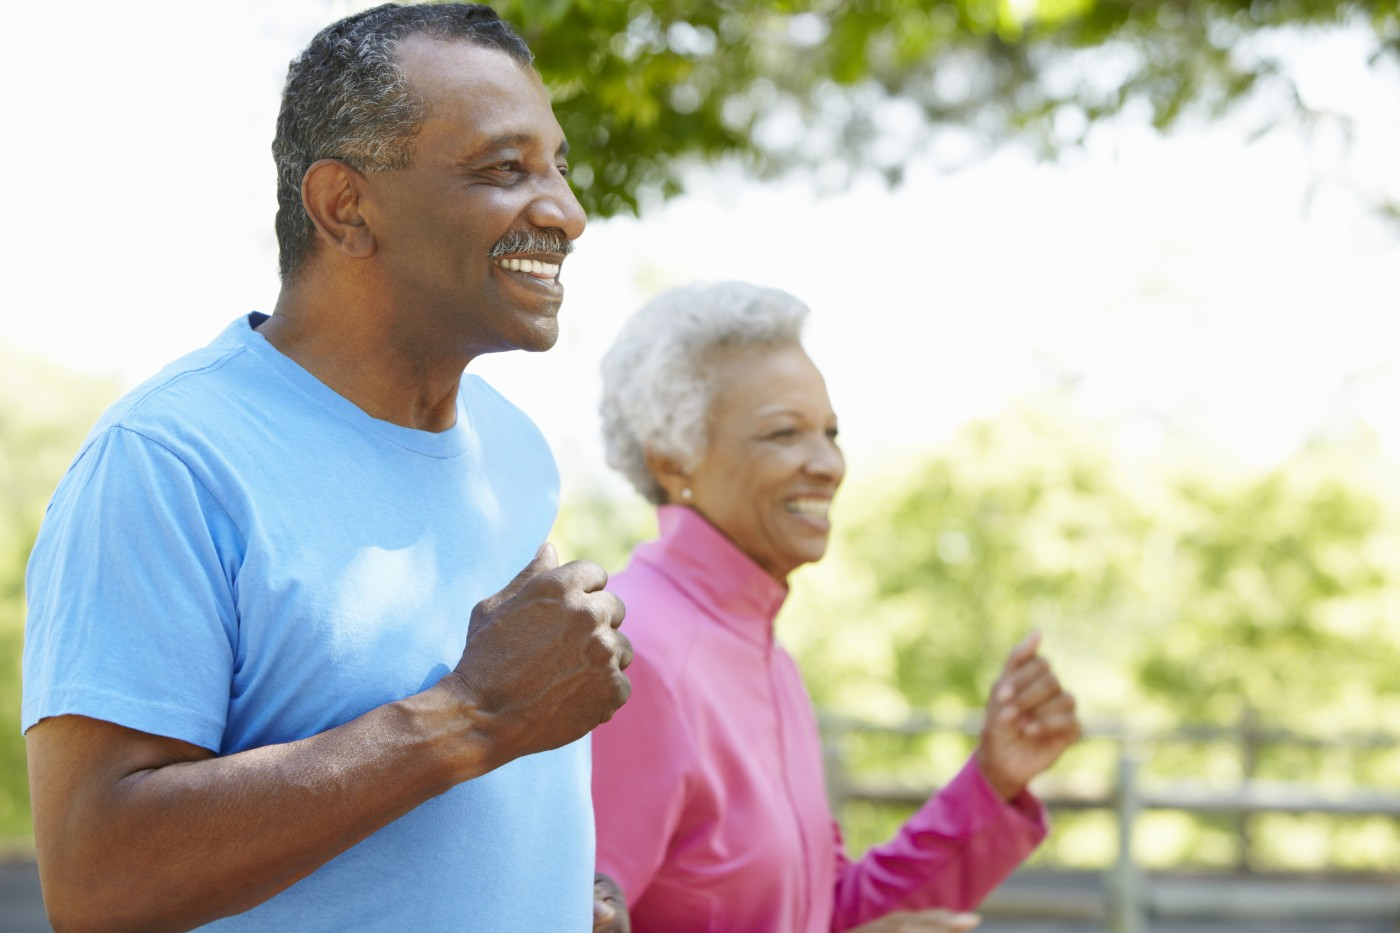 Pah Patients Engaged In Exercise Training Show Range Of